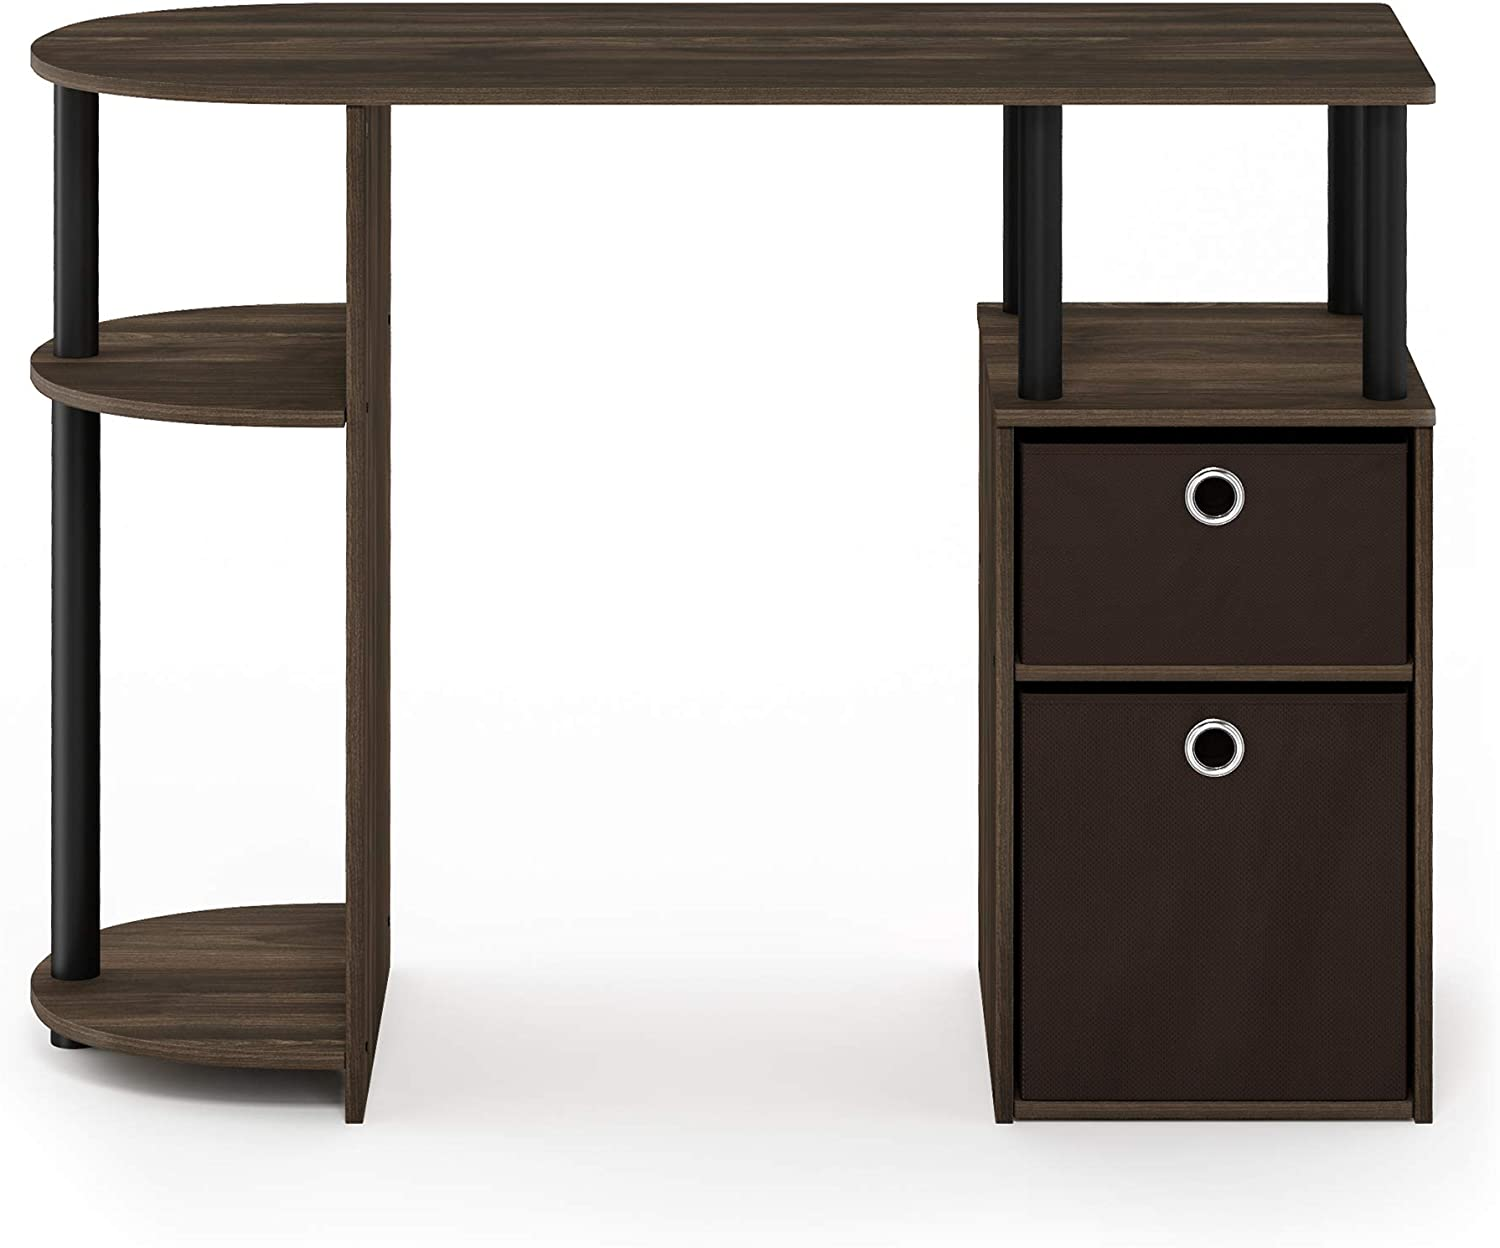 Furinno JAYA Simplistic Computer Study Desk, Columbia Walnut/Black/Dark  Brown